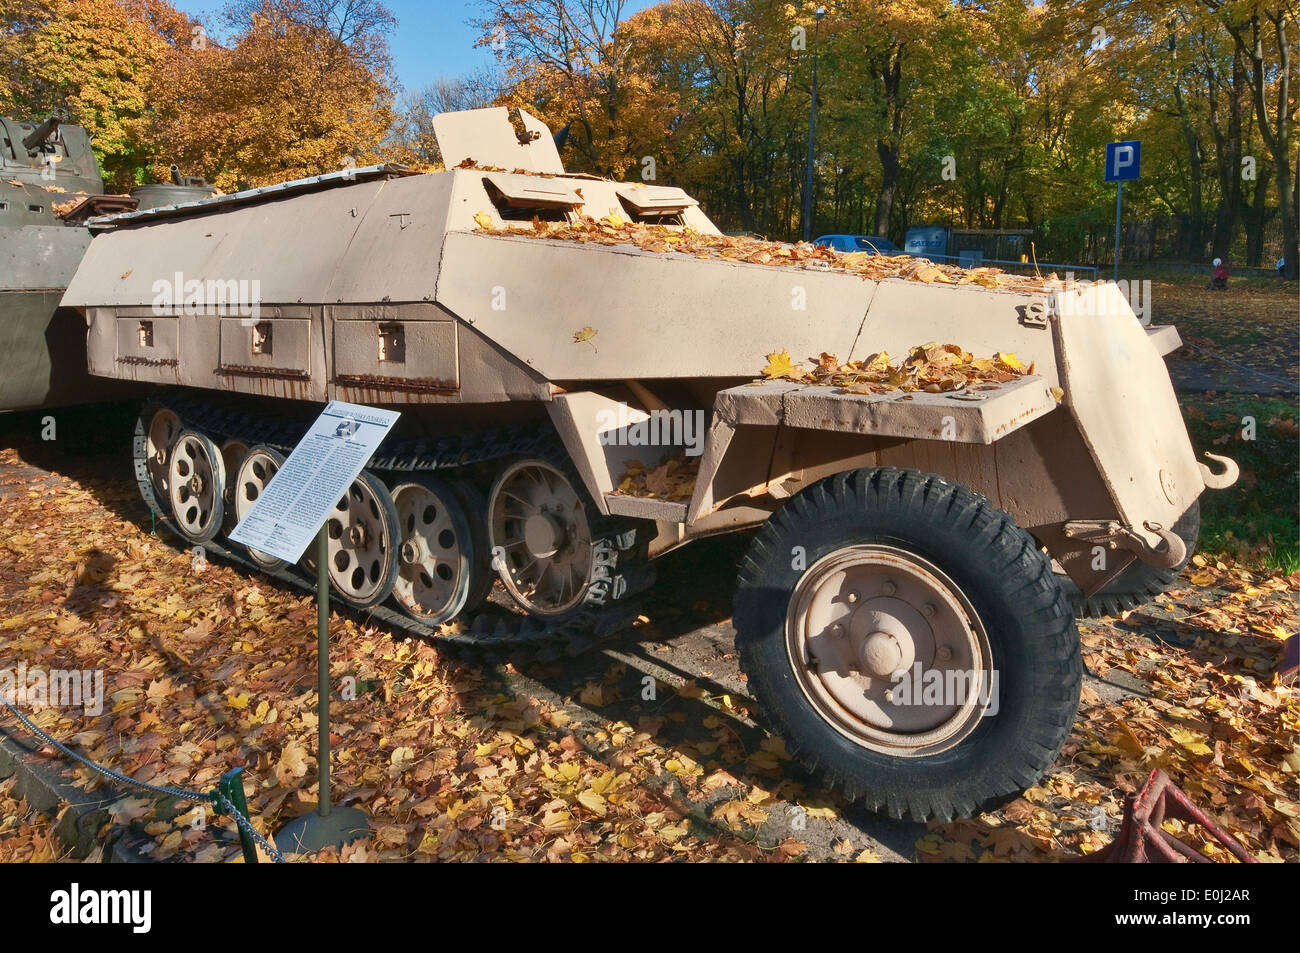 Sd.Kfz.251/1 AUSF.D, German WWII half-track armored personnel carrier, Polish Army Museum in Warsaw, Poland - Stock Image